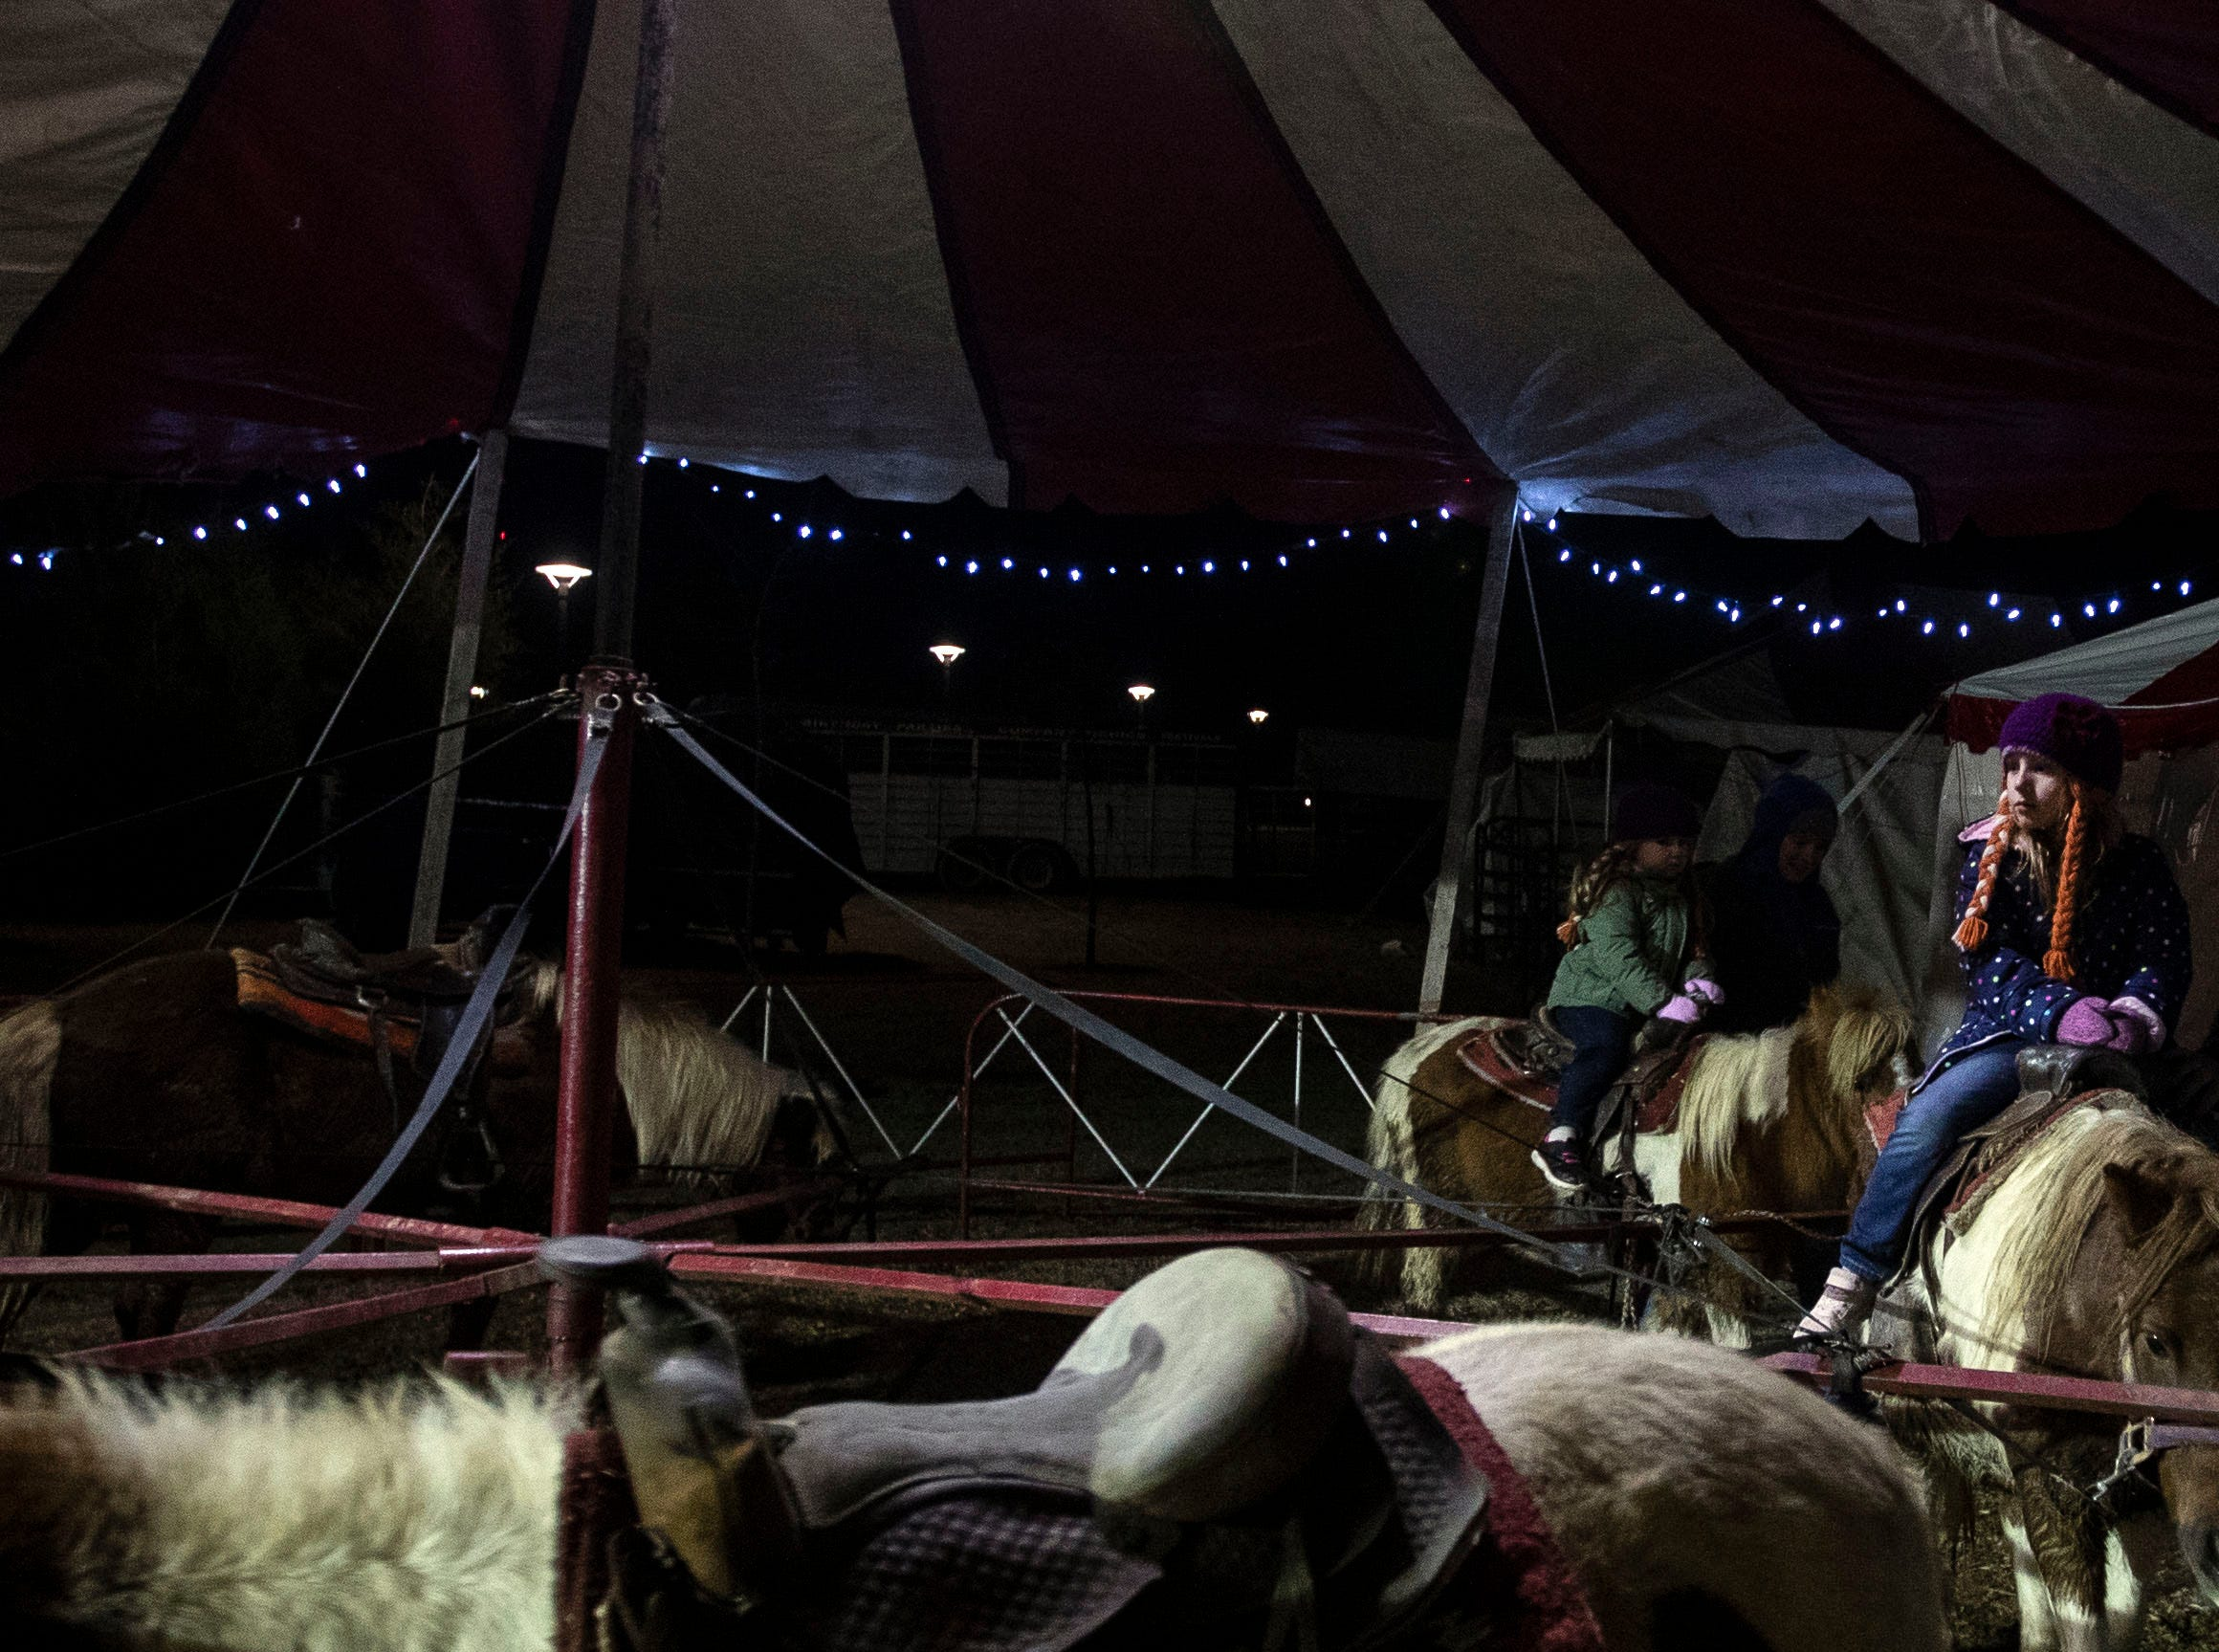 Carlee Blue Jenkins rides a pony at the Starry Nights, annual drive-through light display at Shelby Farms, features walking trails of lights and a drive-through display.